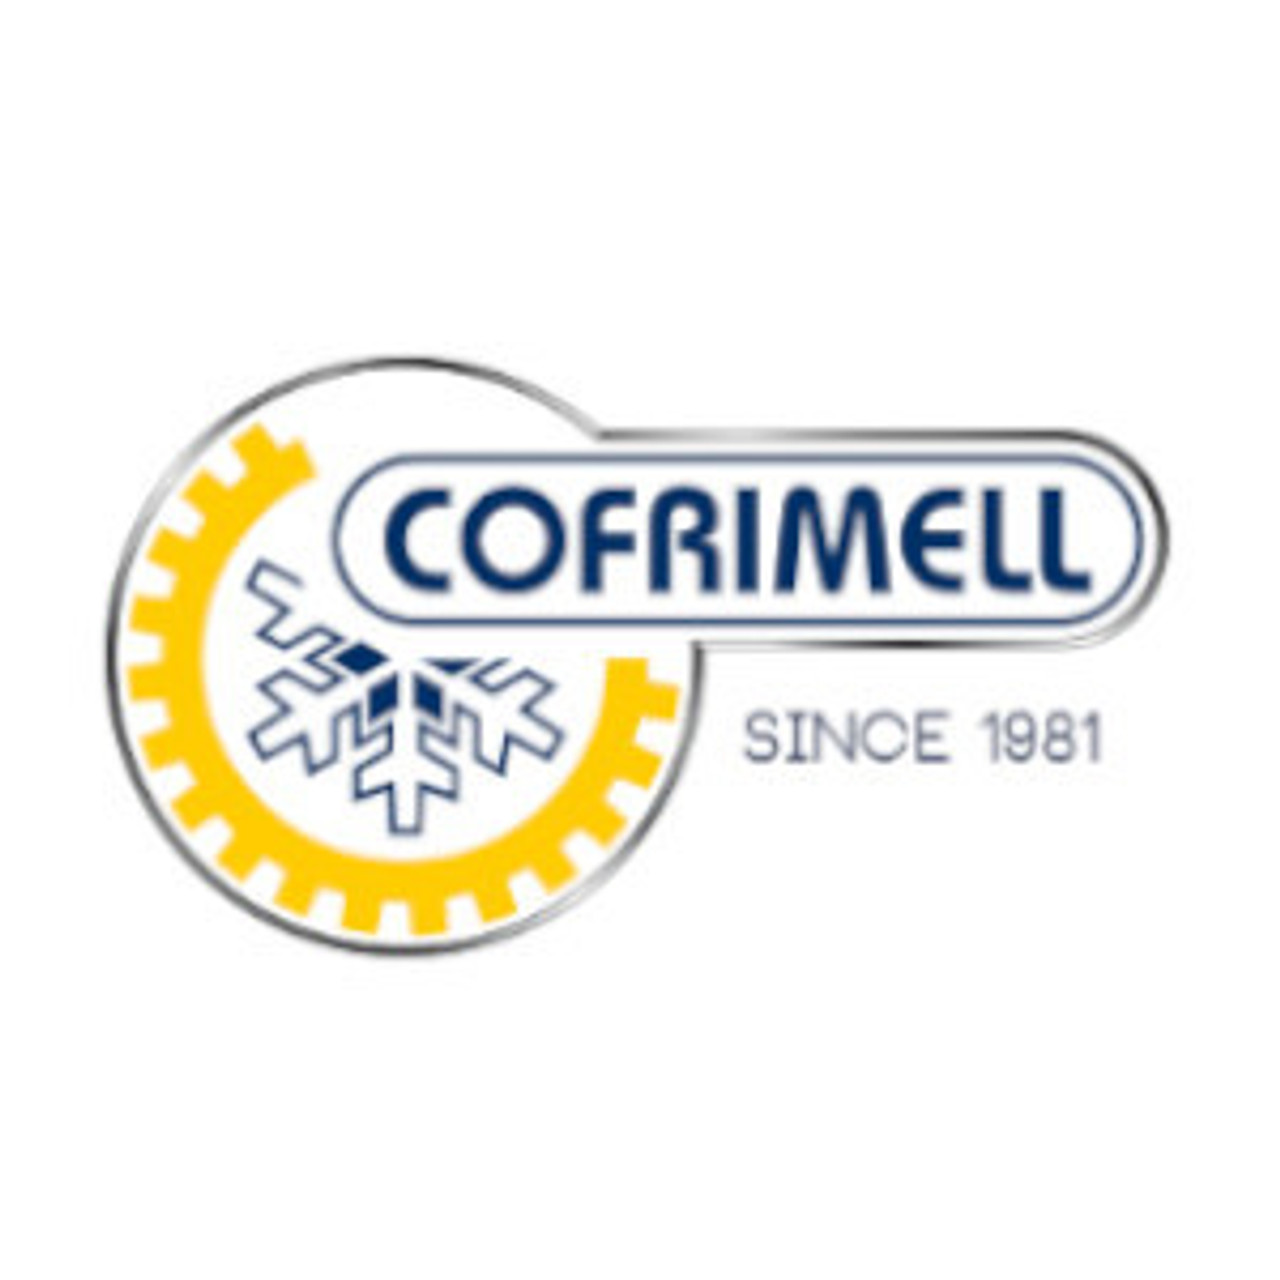 Cofrimell Parts